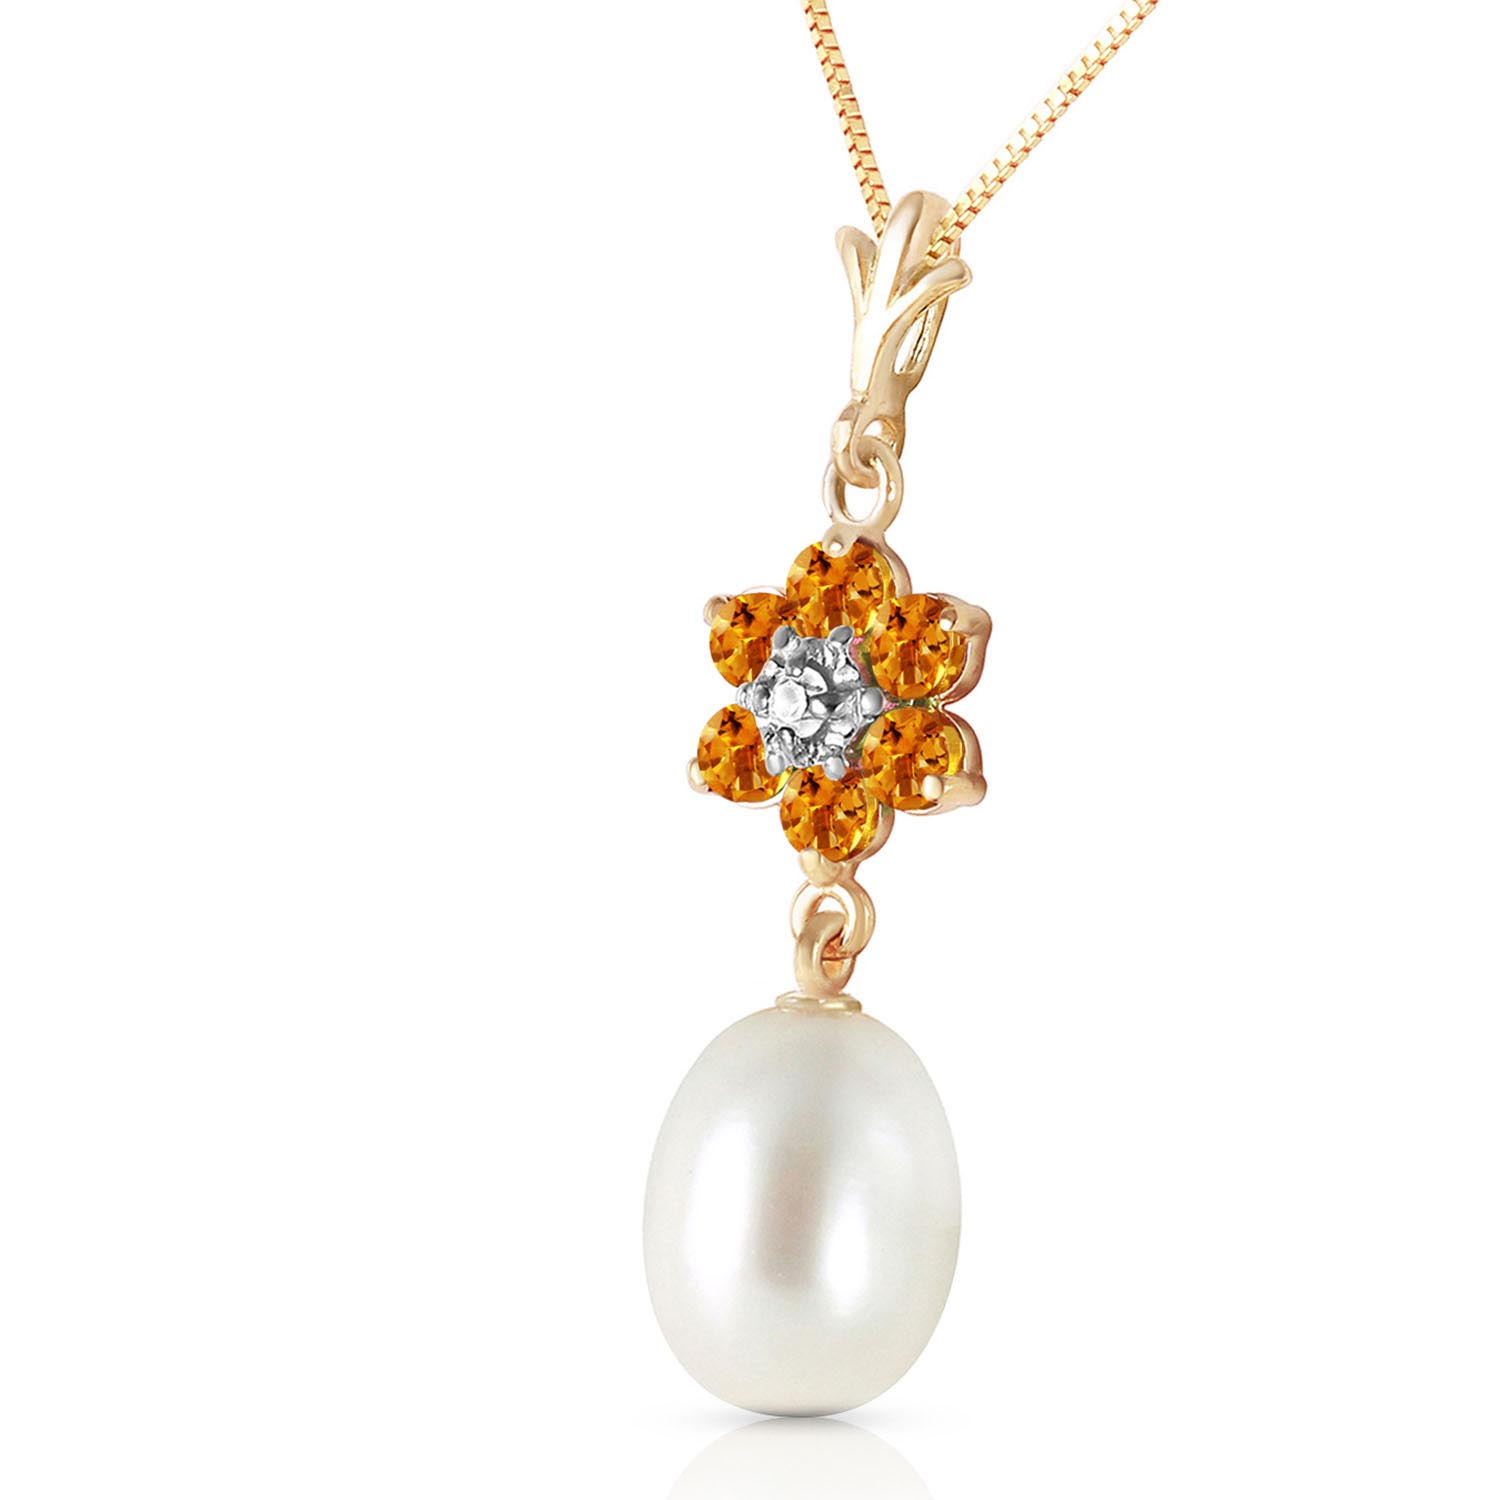 Pearl, Citrine & Diamond Daisy Pendant Necklace in 9ct Gold